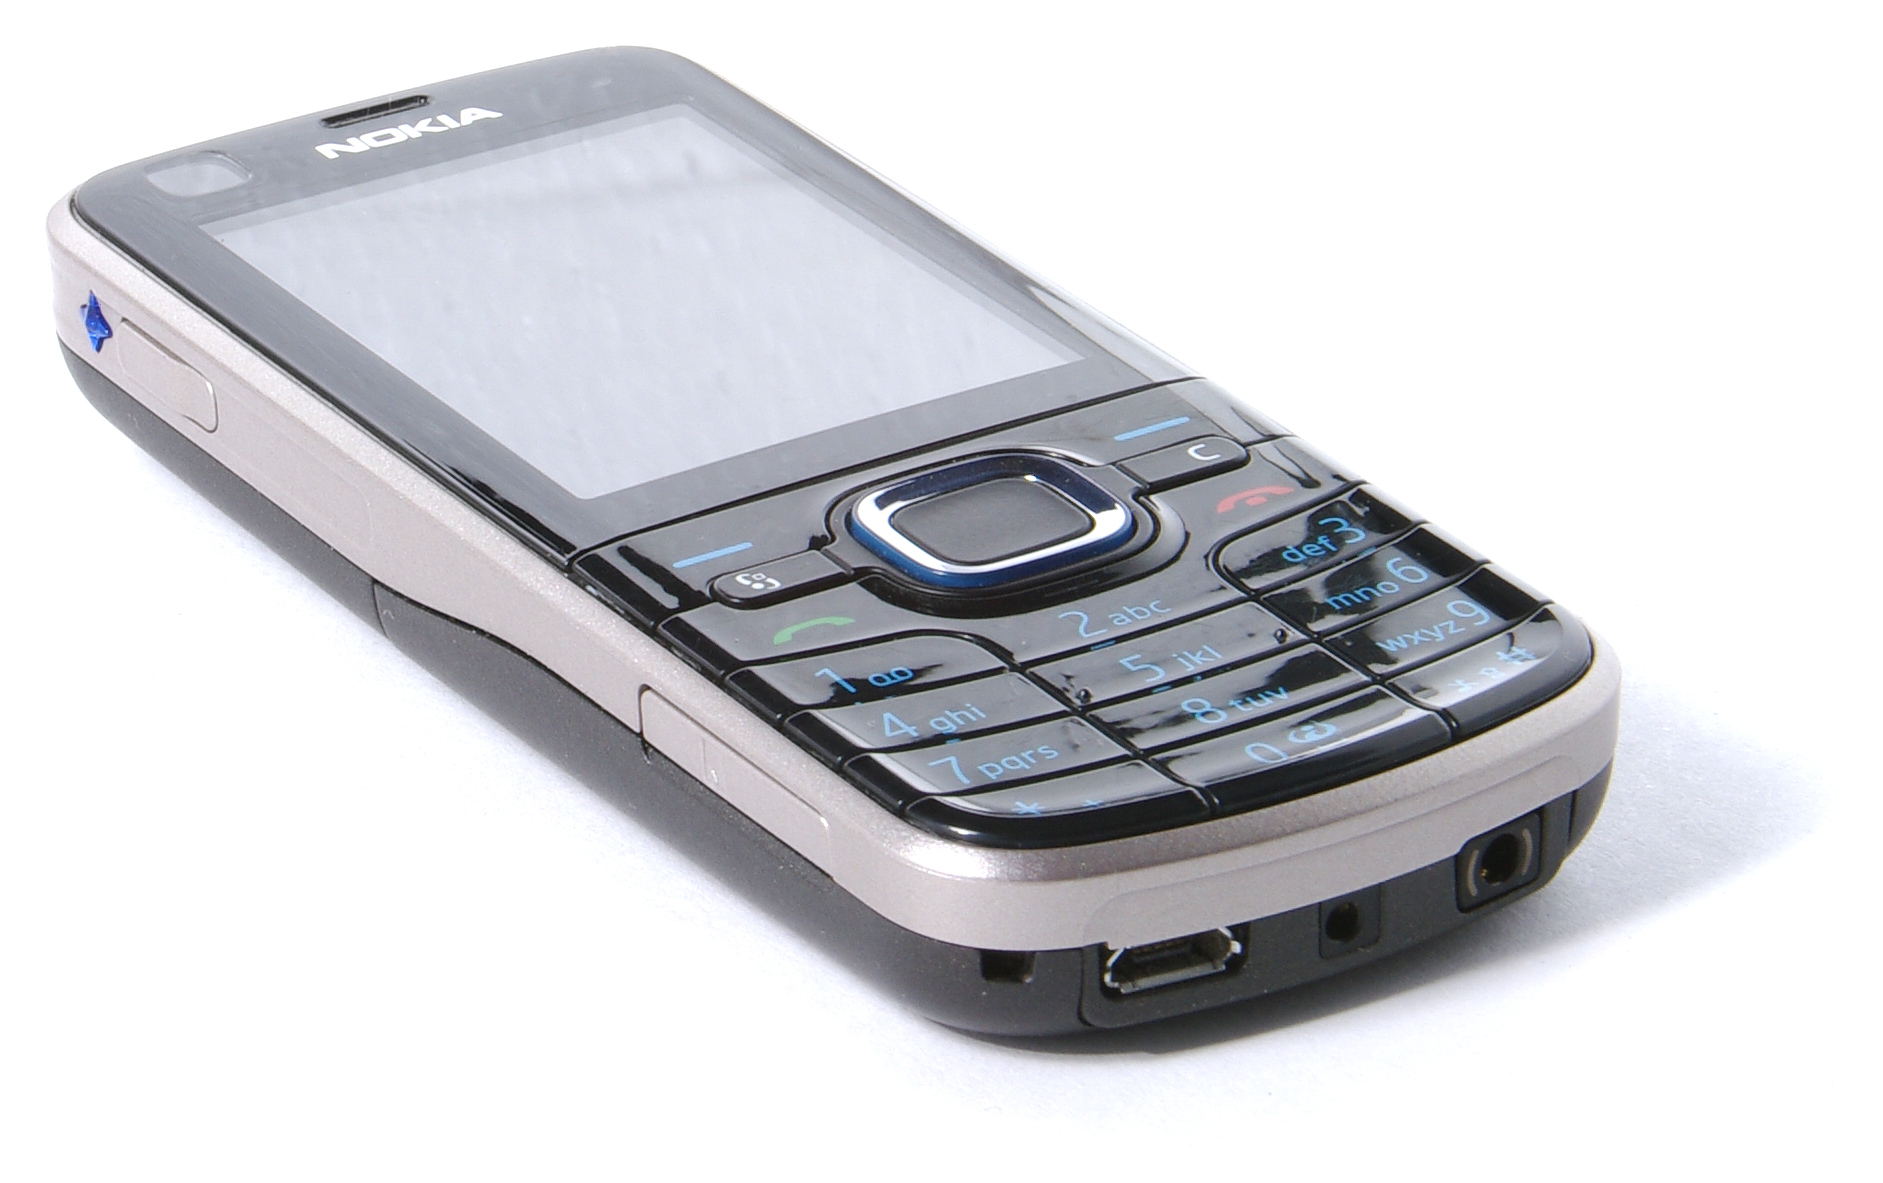 File Nokia 6220 classic jpg   Wikipedia  the free encyclopedia